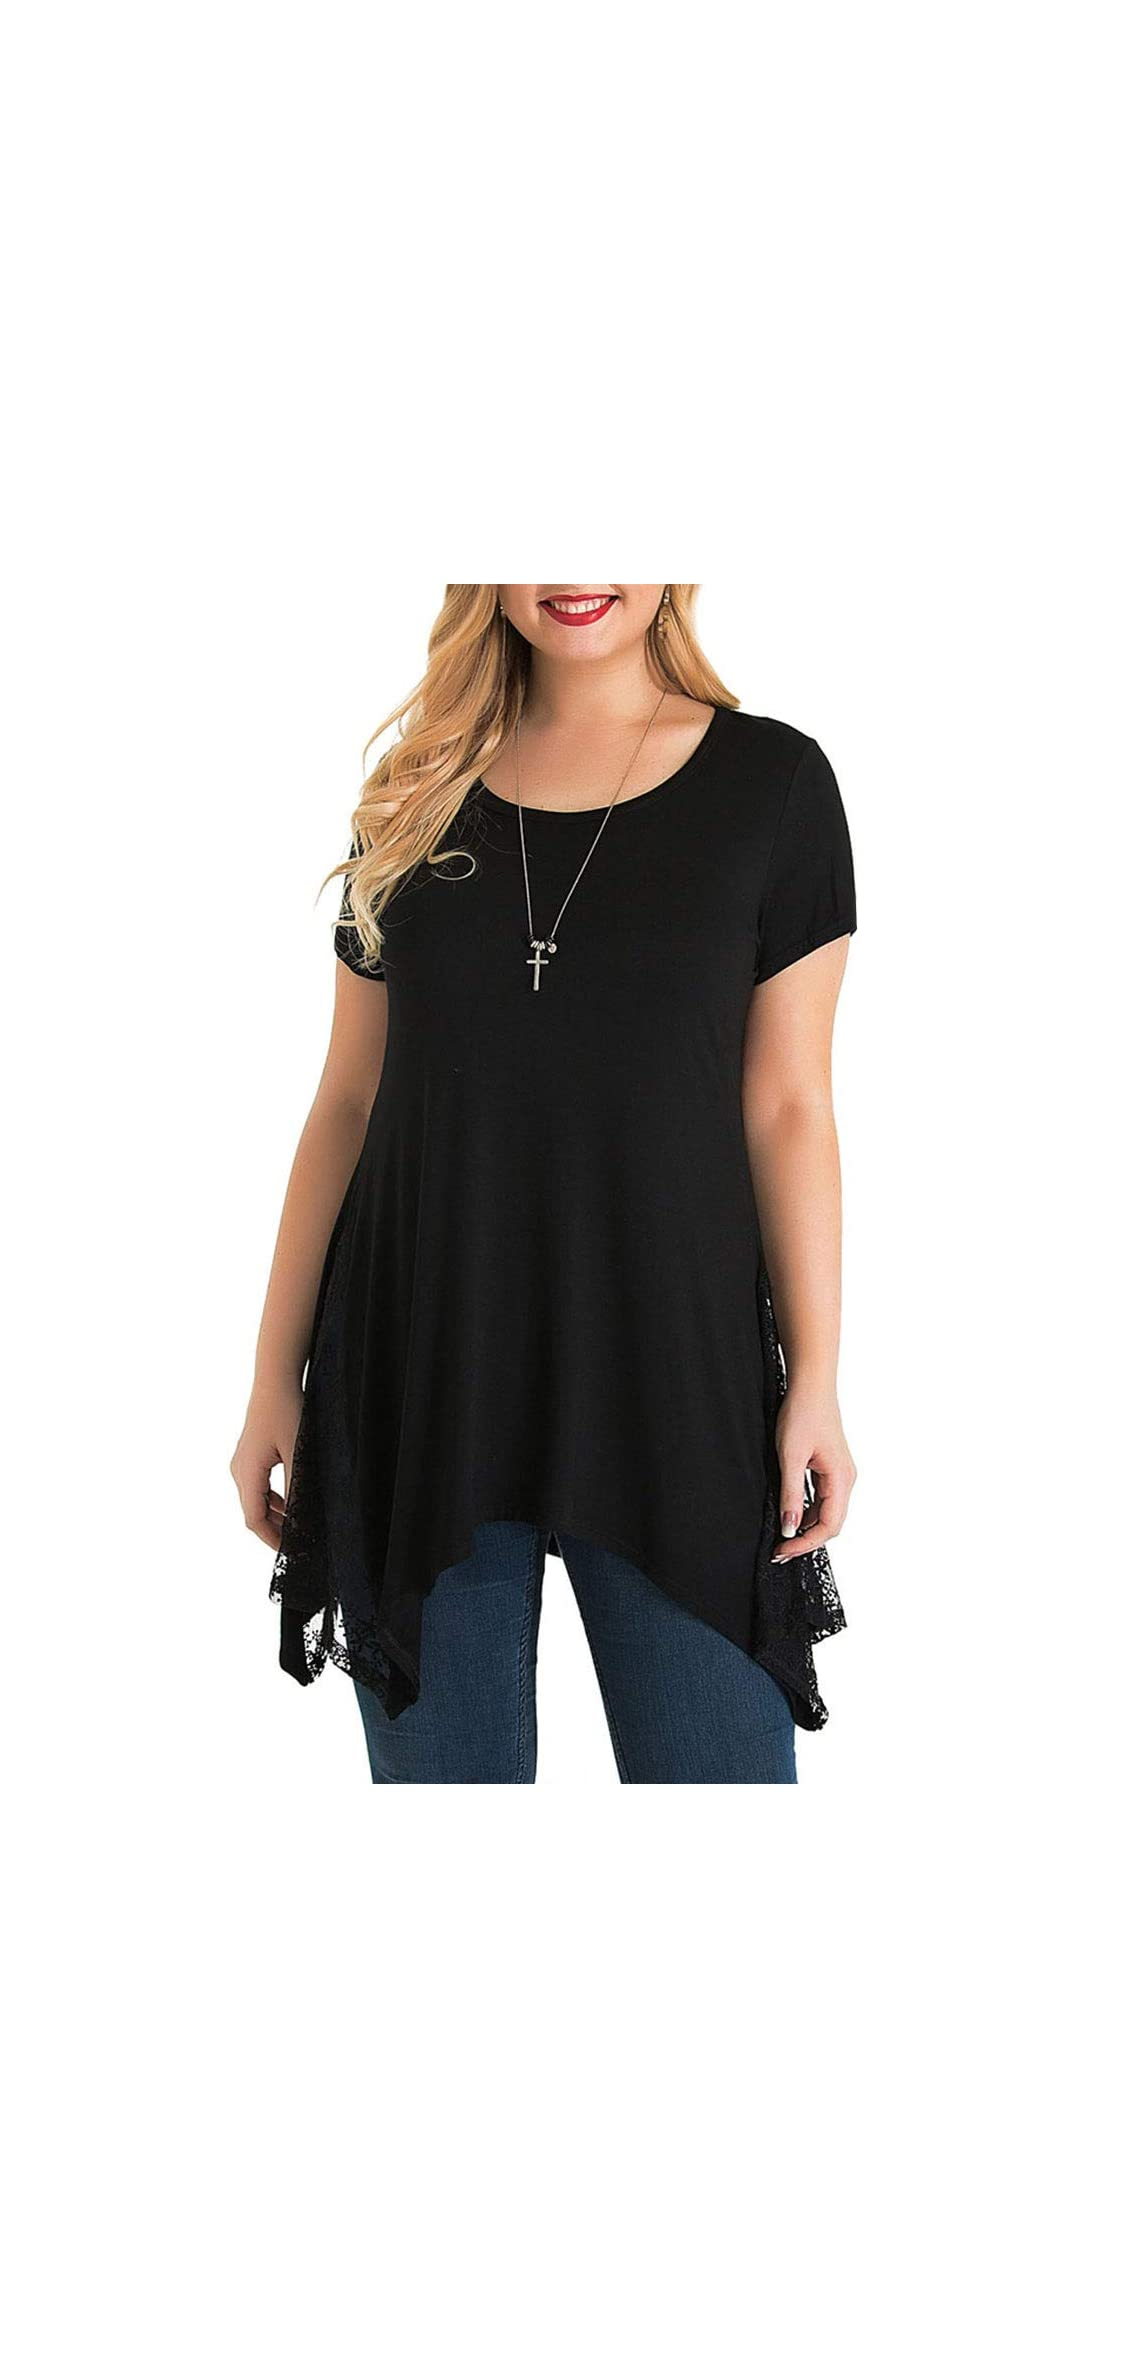 Women's Plus Size Short Sleeve T Shirts Lace Swing Tunic